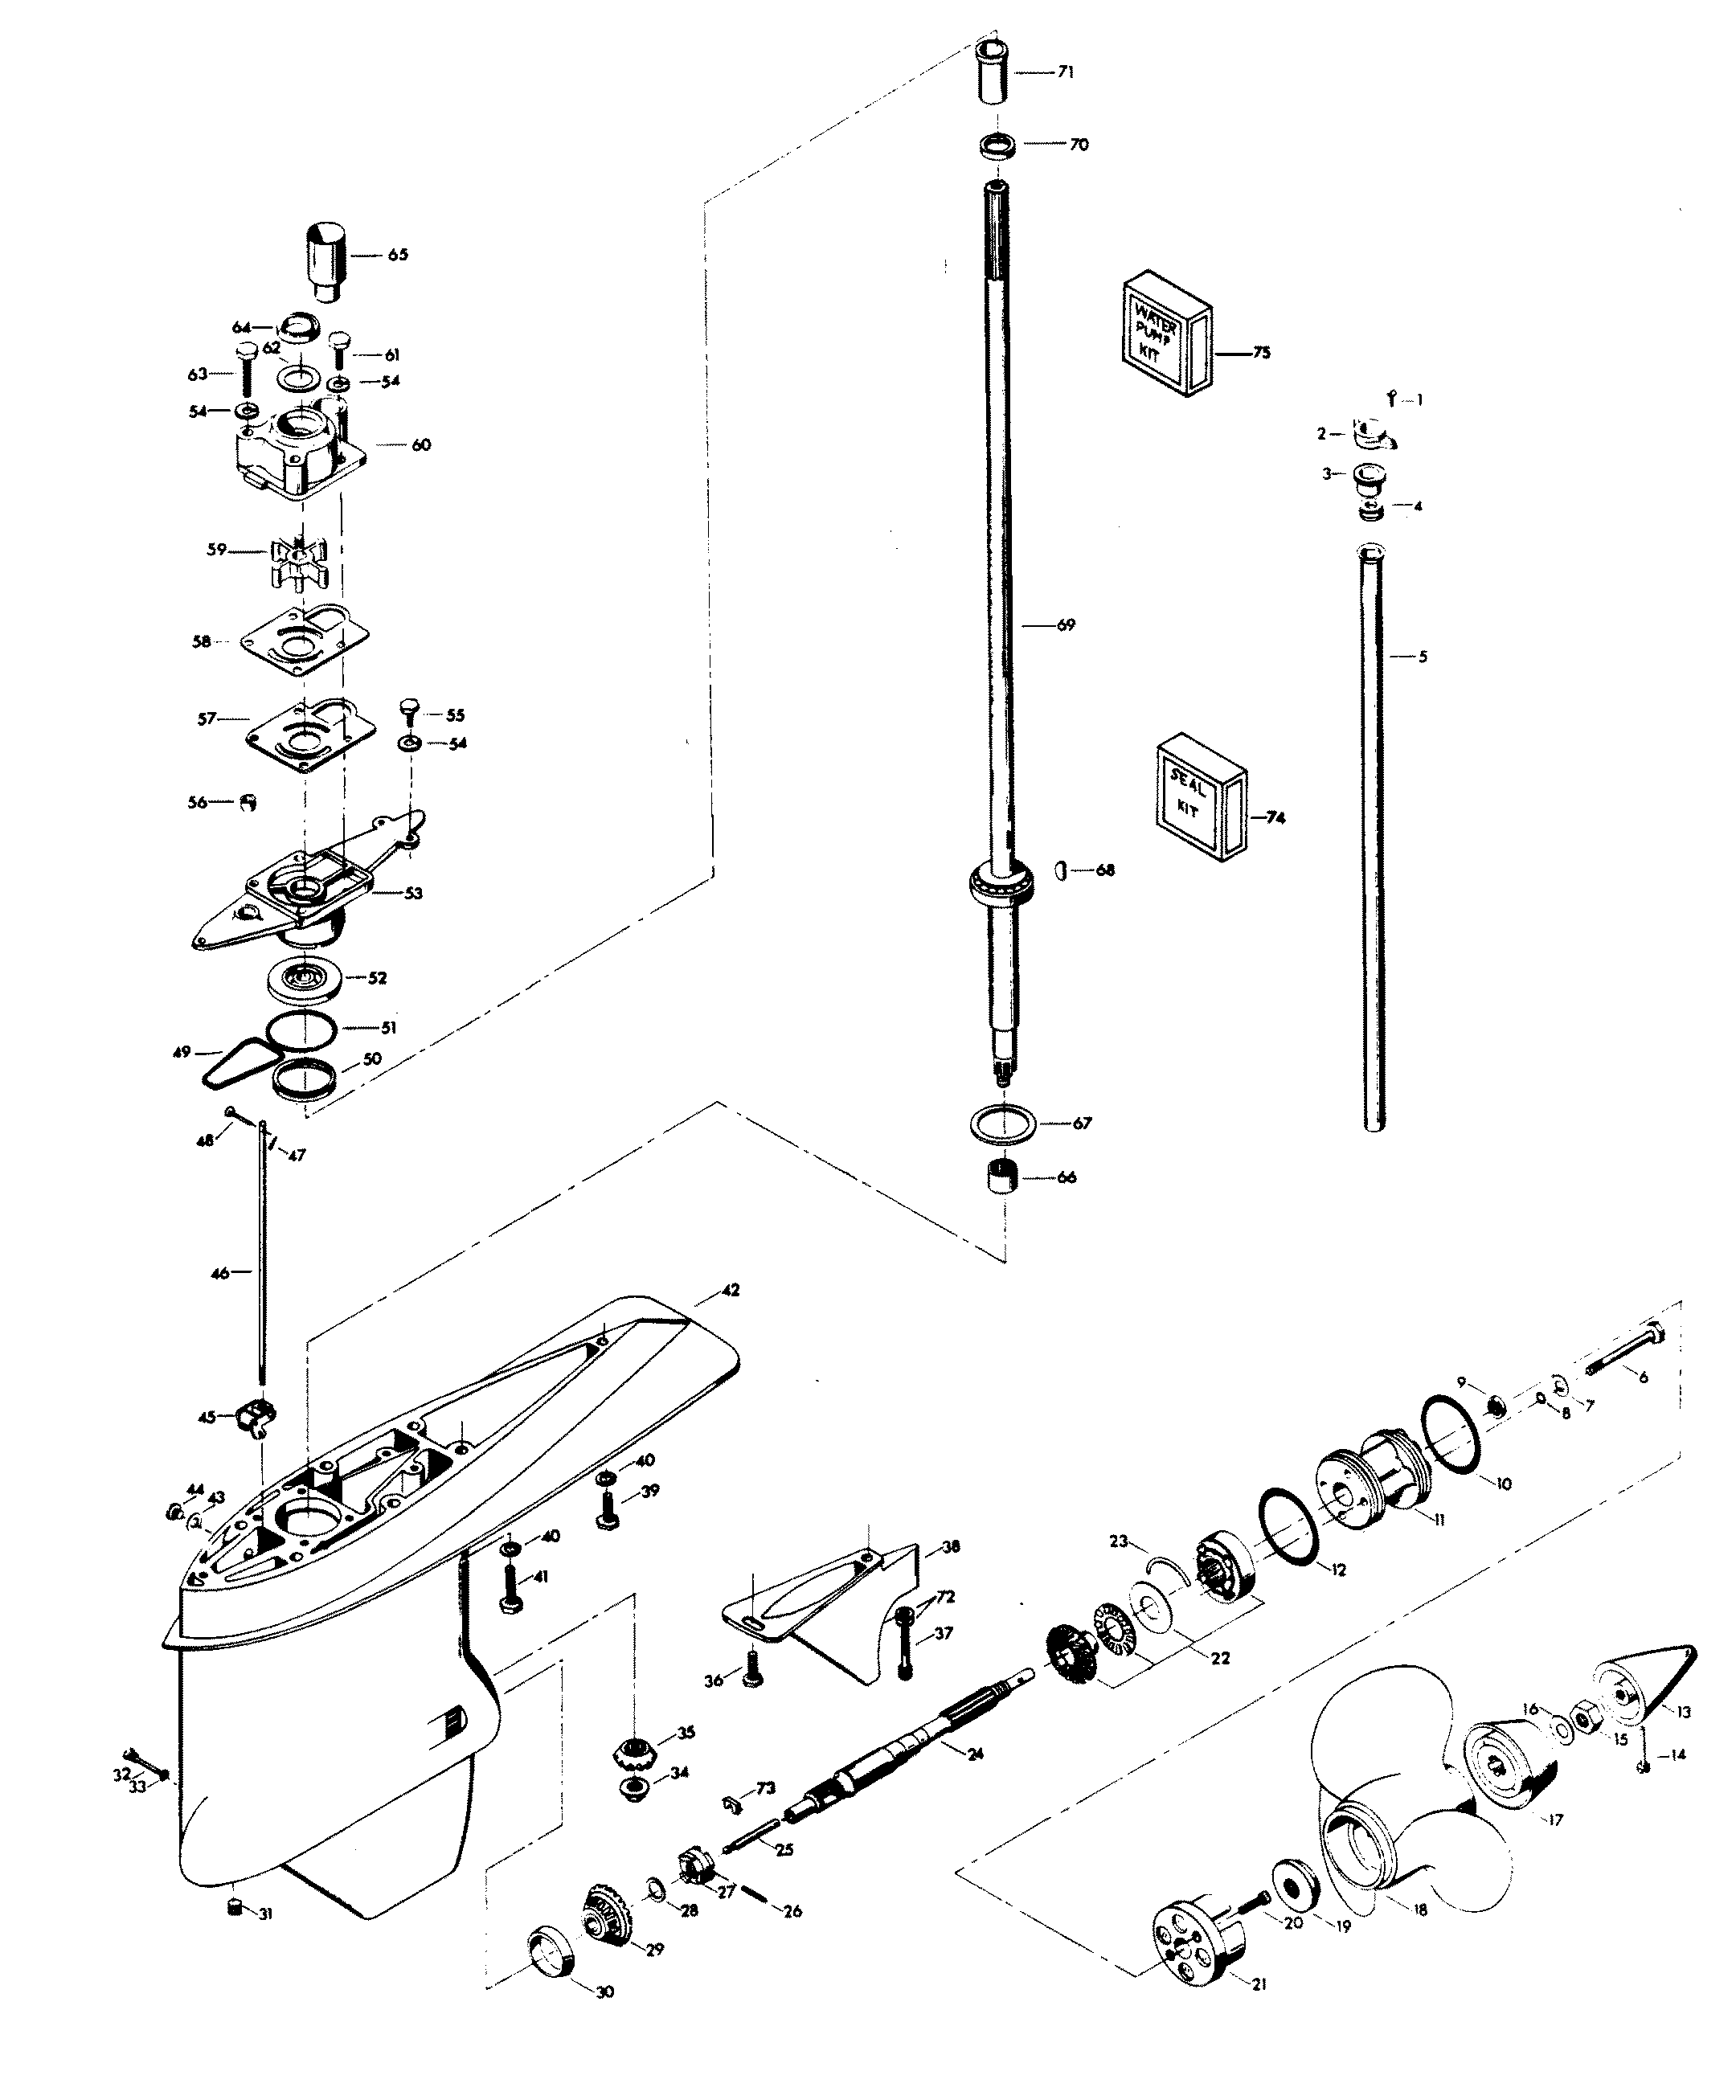 Mercury 402 Wiring Diagram Wiring Source Mercury Outboard Ignition Wiring  Diagram Mercury 402 Wiring Diagram